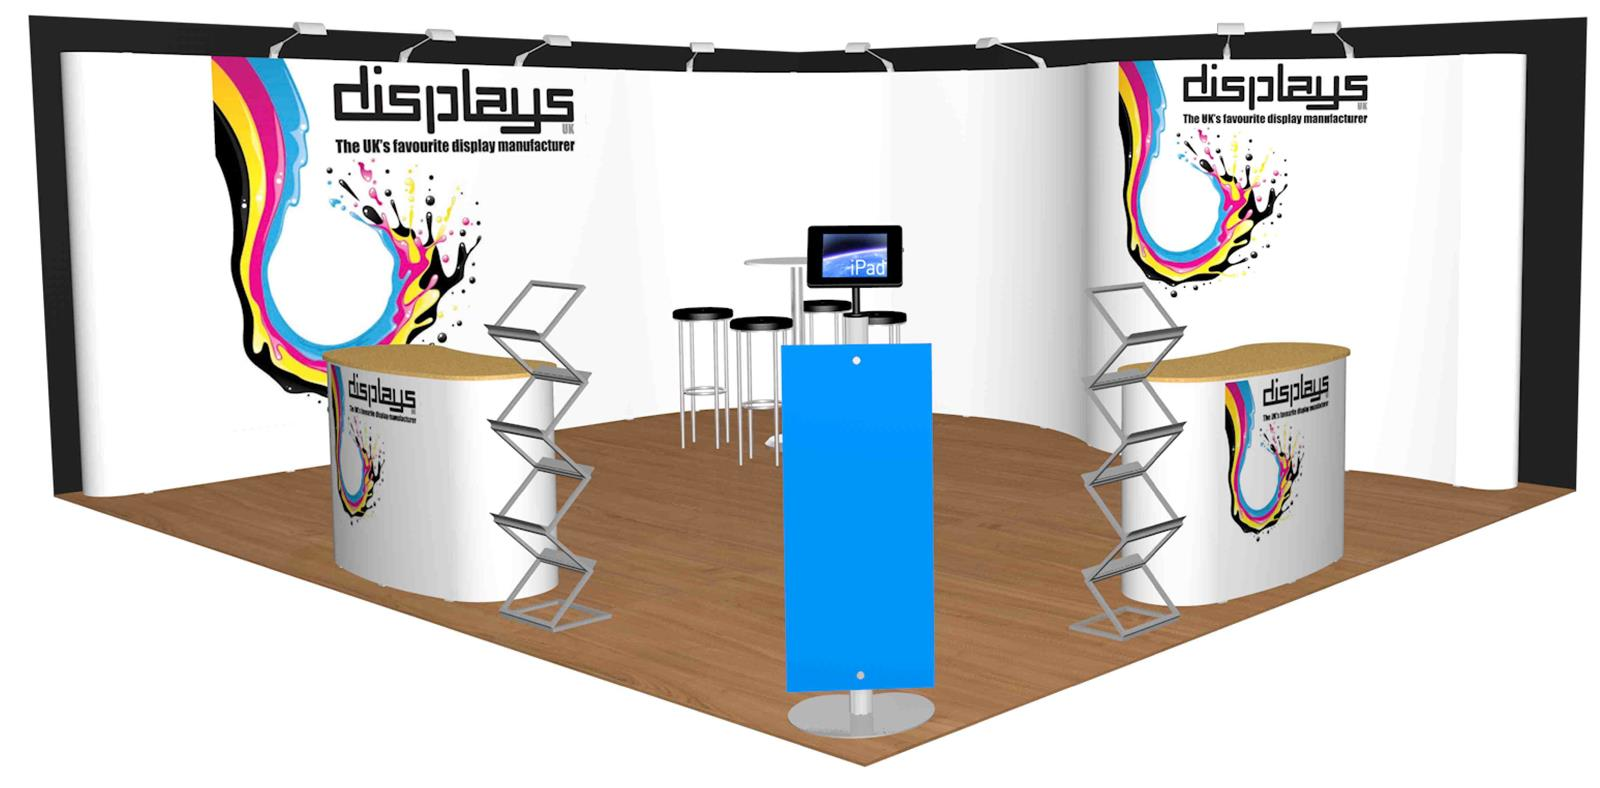 5m x 6m Linked Pop Up Exhibition Display Stand - Kit 41